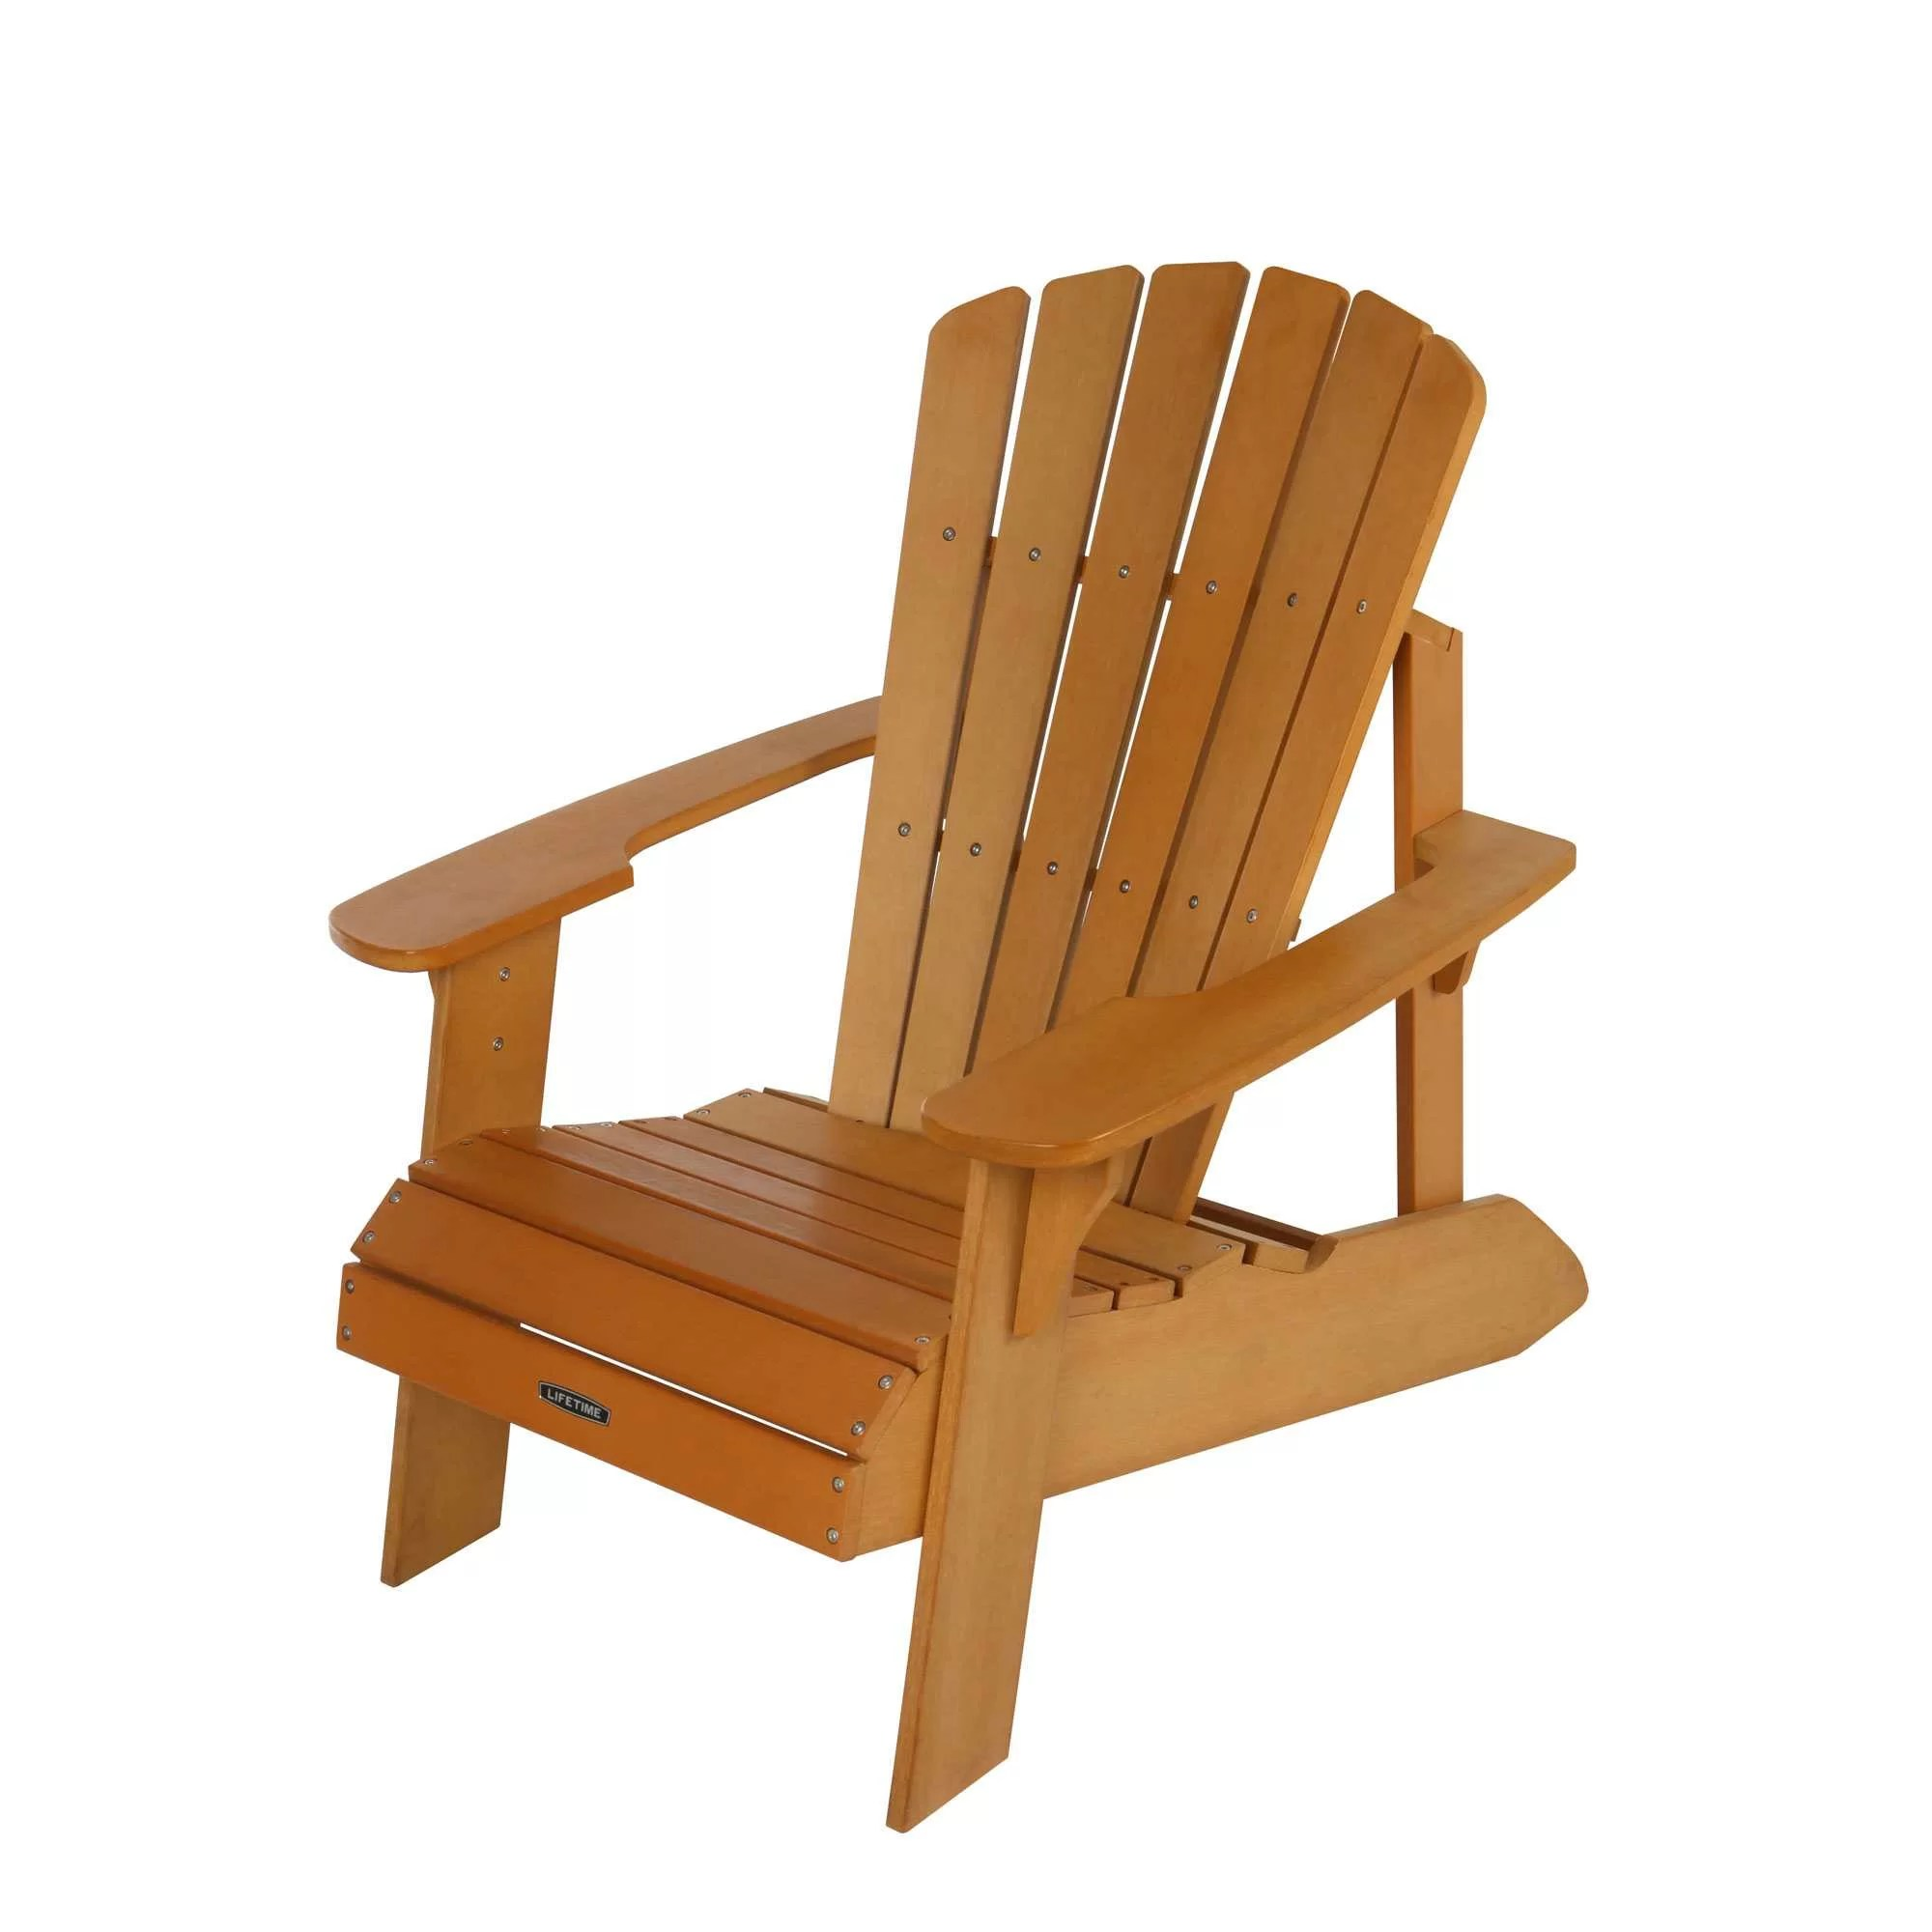 Lifetime Chair Plastic Adirondack Chair